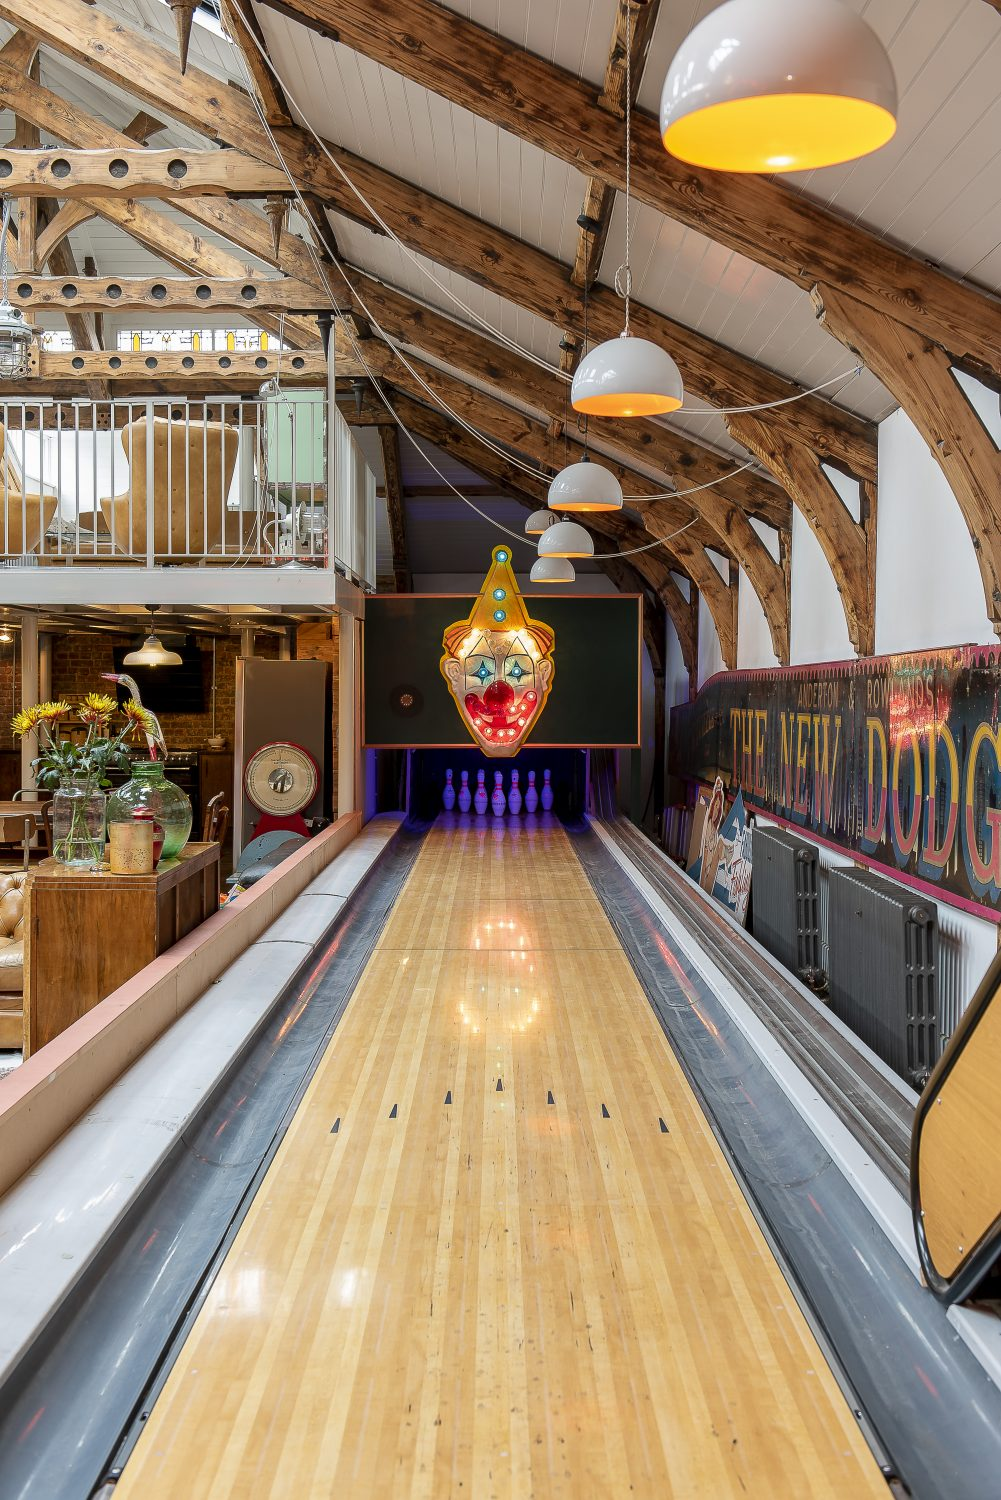 """The bowling alley used to be in Soho House,"" says Laurie. ""Sol heard they were getting rid of it and asked if he could buy it and they told him, if he took it out, he could have it."